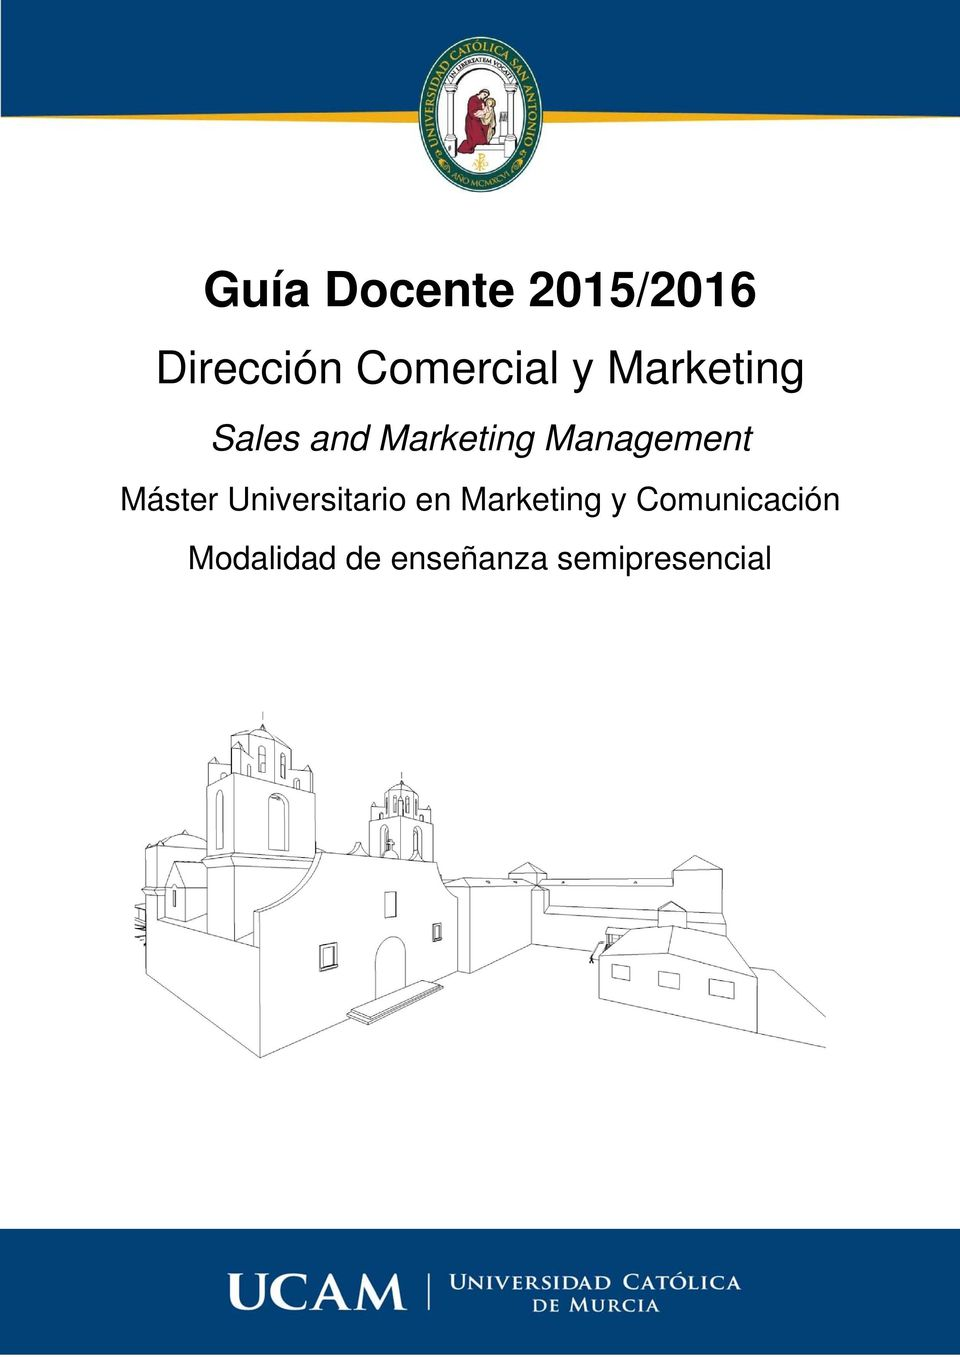 Máster Universitario en Marketing y